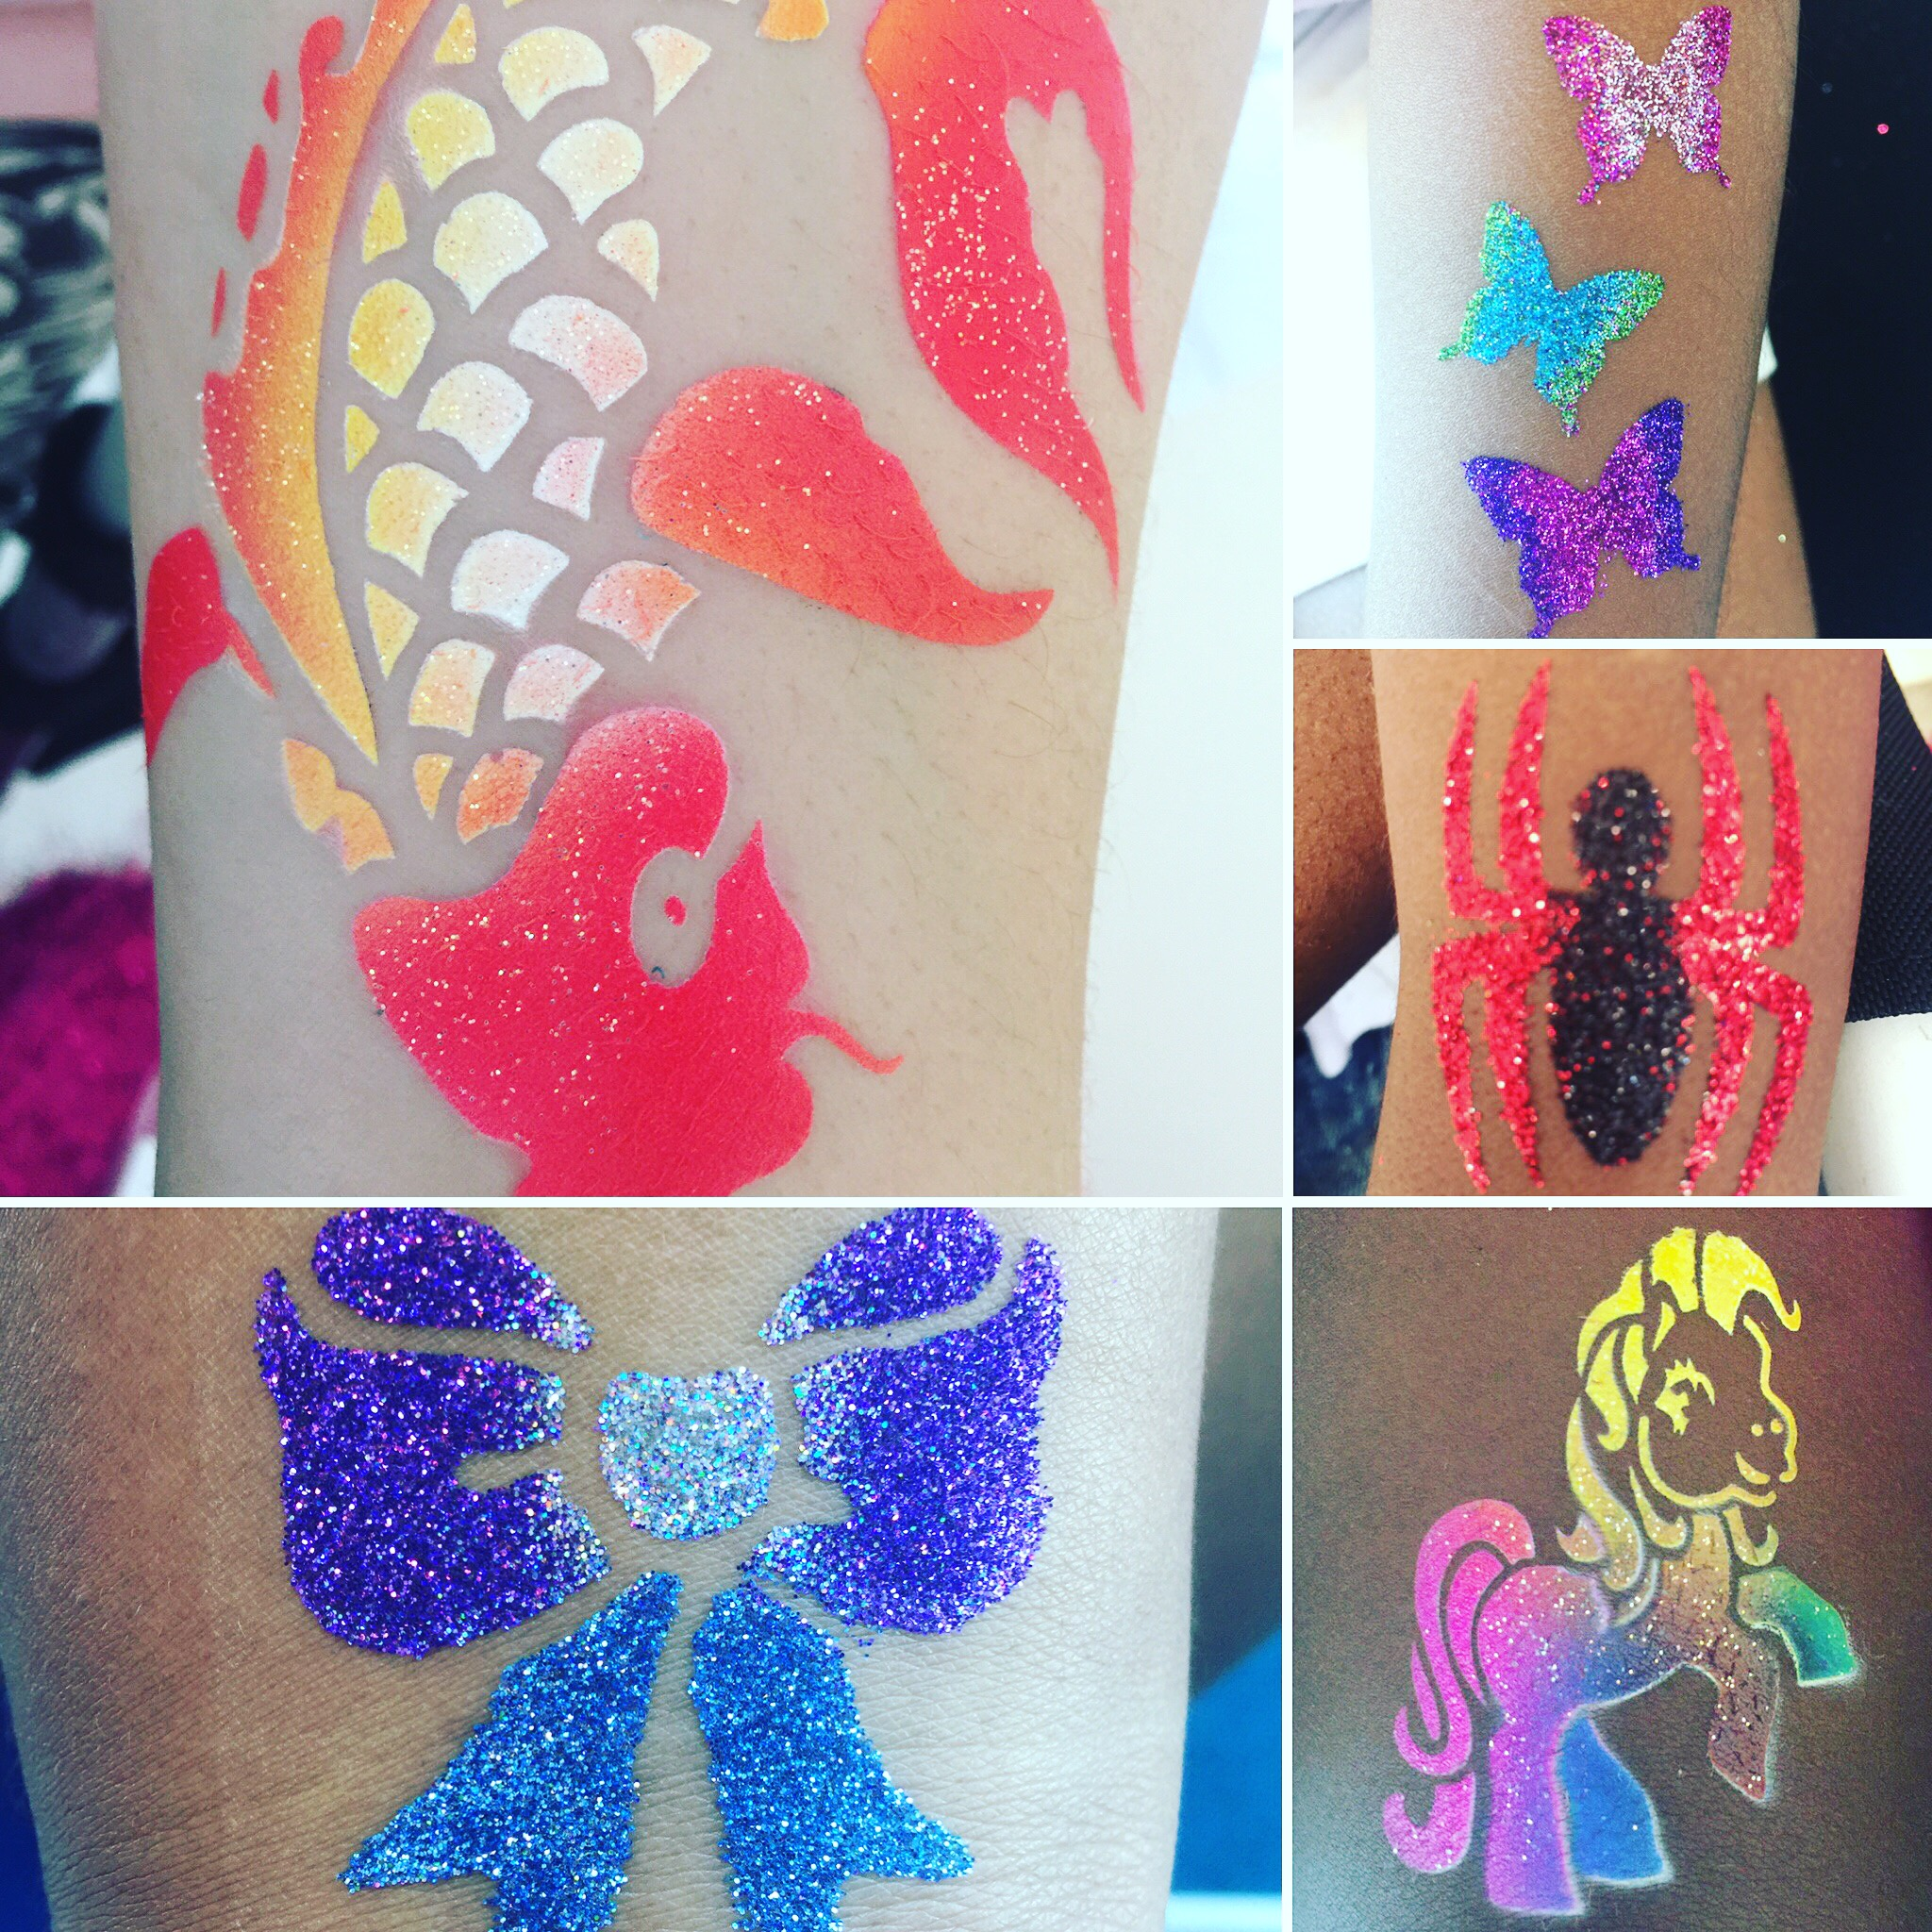 Glitter tattoos, AirBrush Tattoos, m